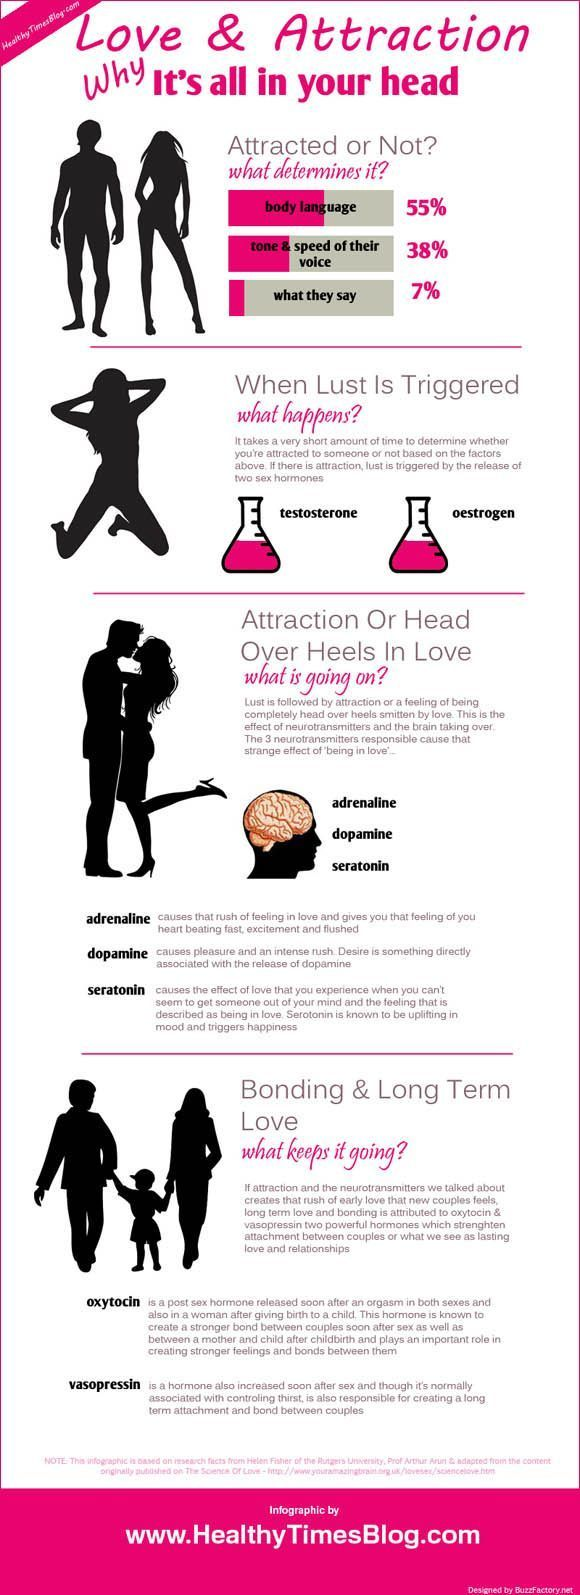 seamess-long-term-effects-of-online-dating